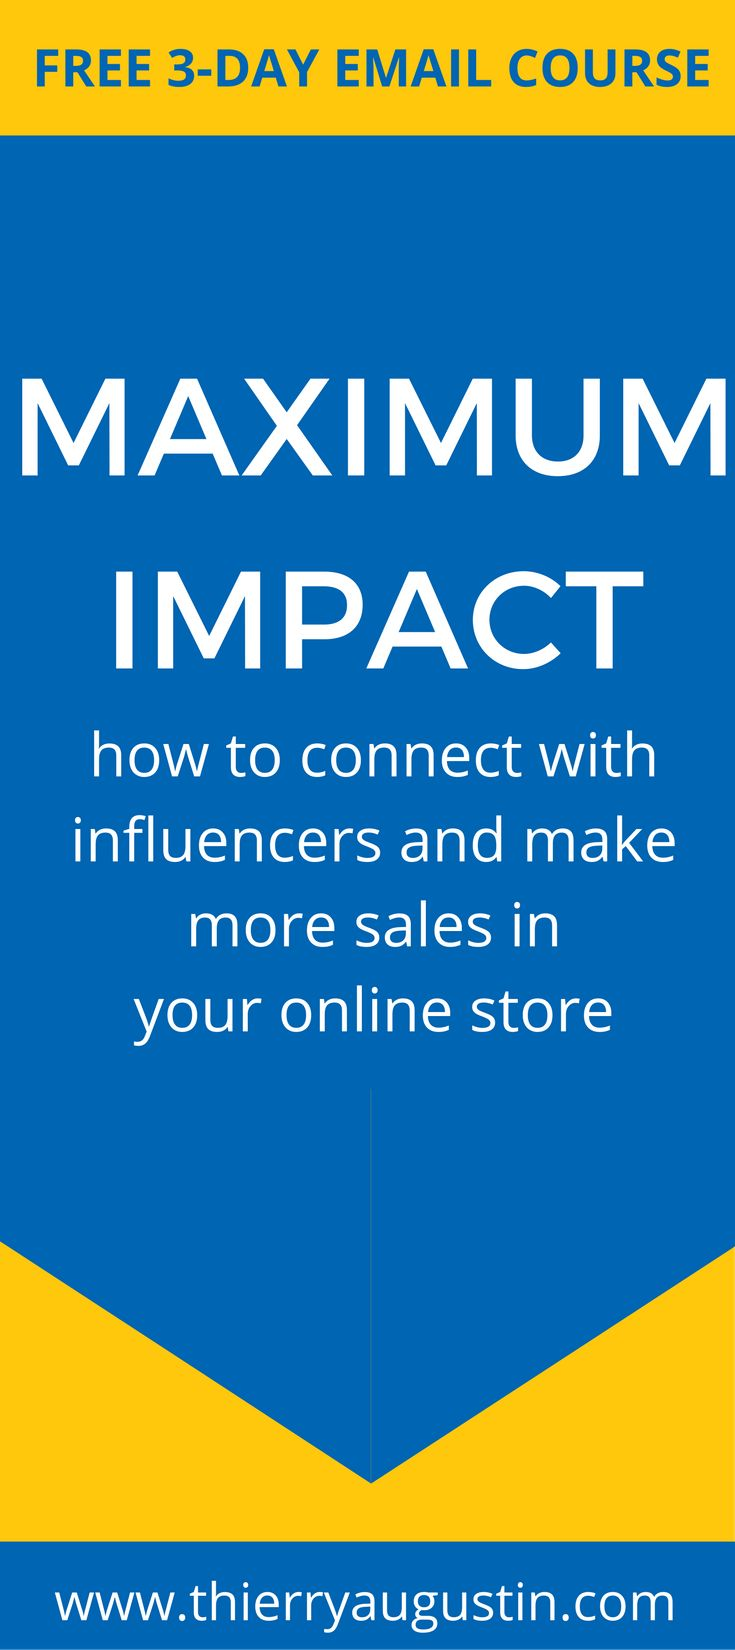 Online Store | Online Shop | How to make more money | How to get more sales | Ecommerce marketing tips | Business Strategist |Email Marketing | List Building | Influencer Marketing | Partnering with a blogger | digital influencers